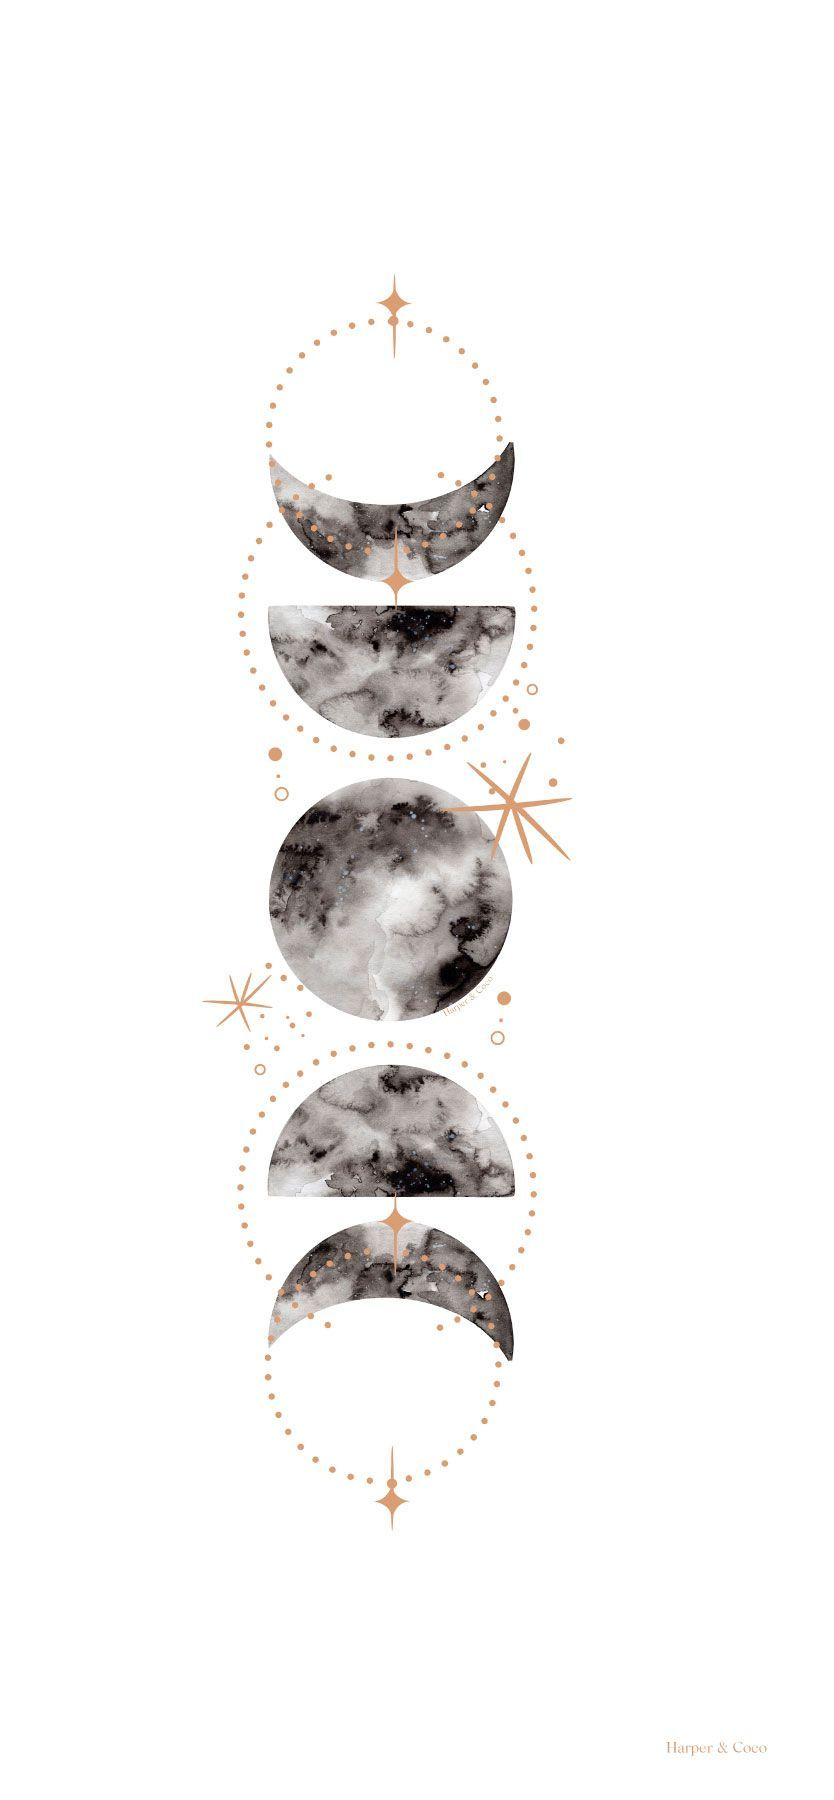 Moon Phases Iphone Wallpaper Iphone Wallpaper Moon Live Wallpaper Iphone Moon Wall Art